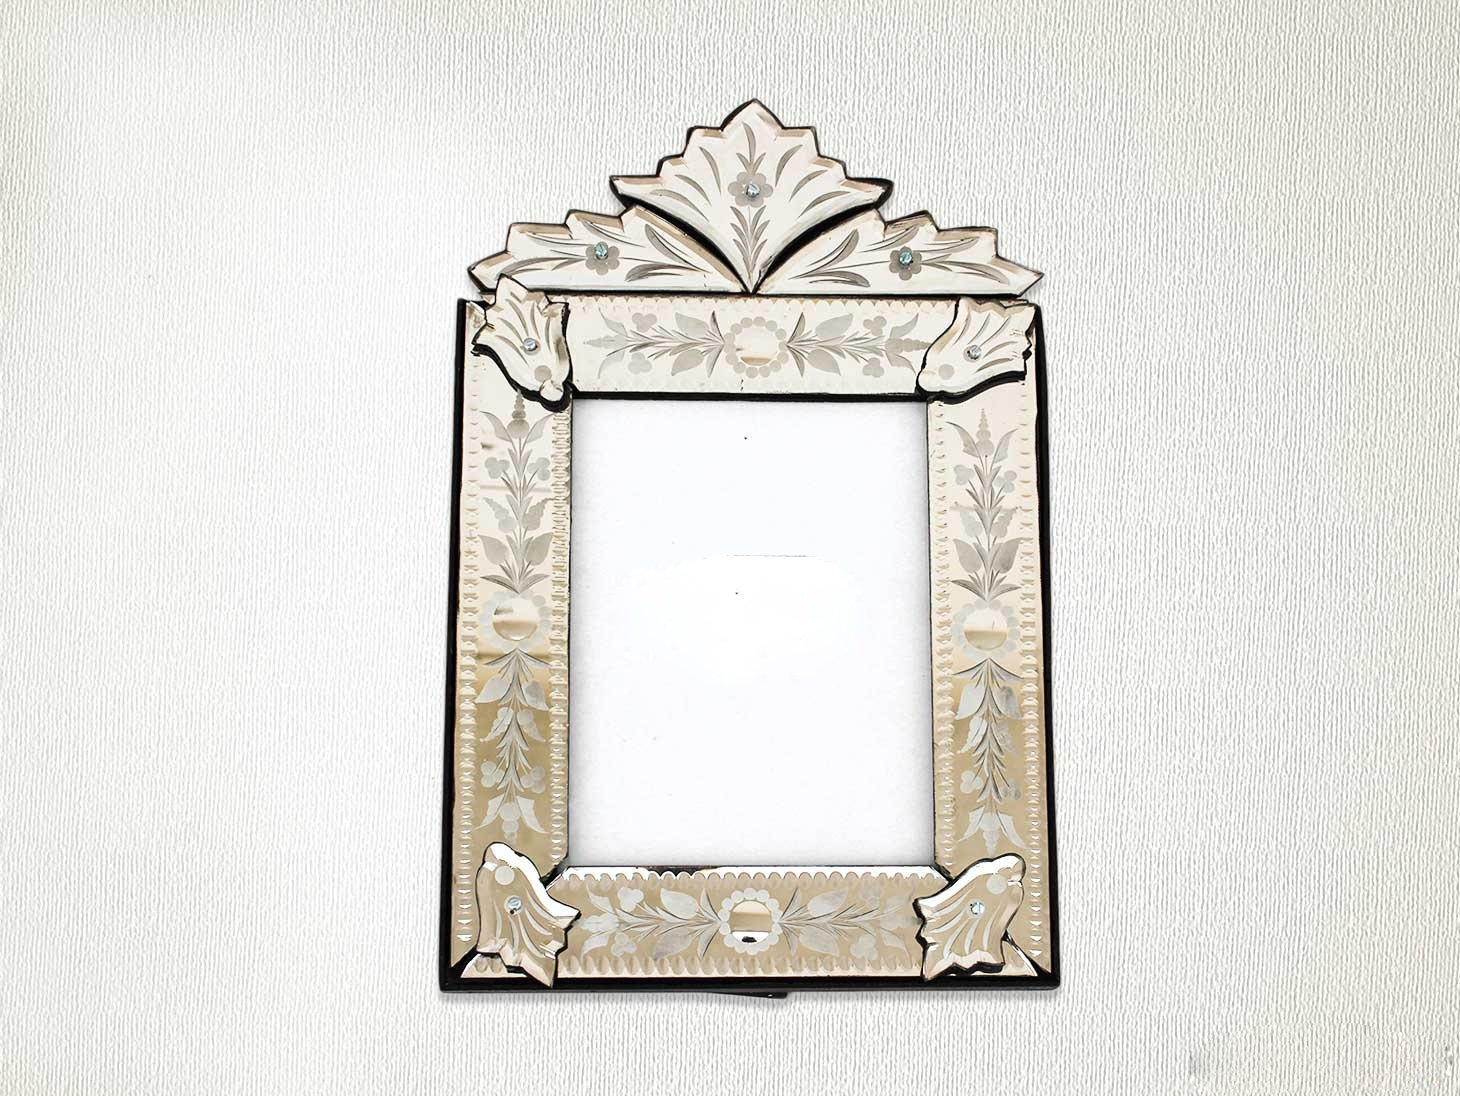 Indianshelf Handmade Decorative Clear Wood Glass and Iron Vintage Venetian Photo Frame Home Decor Gift Item